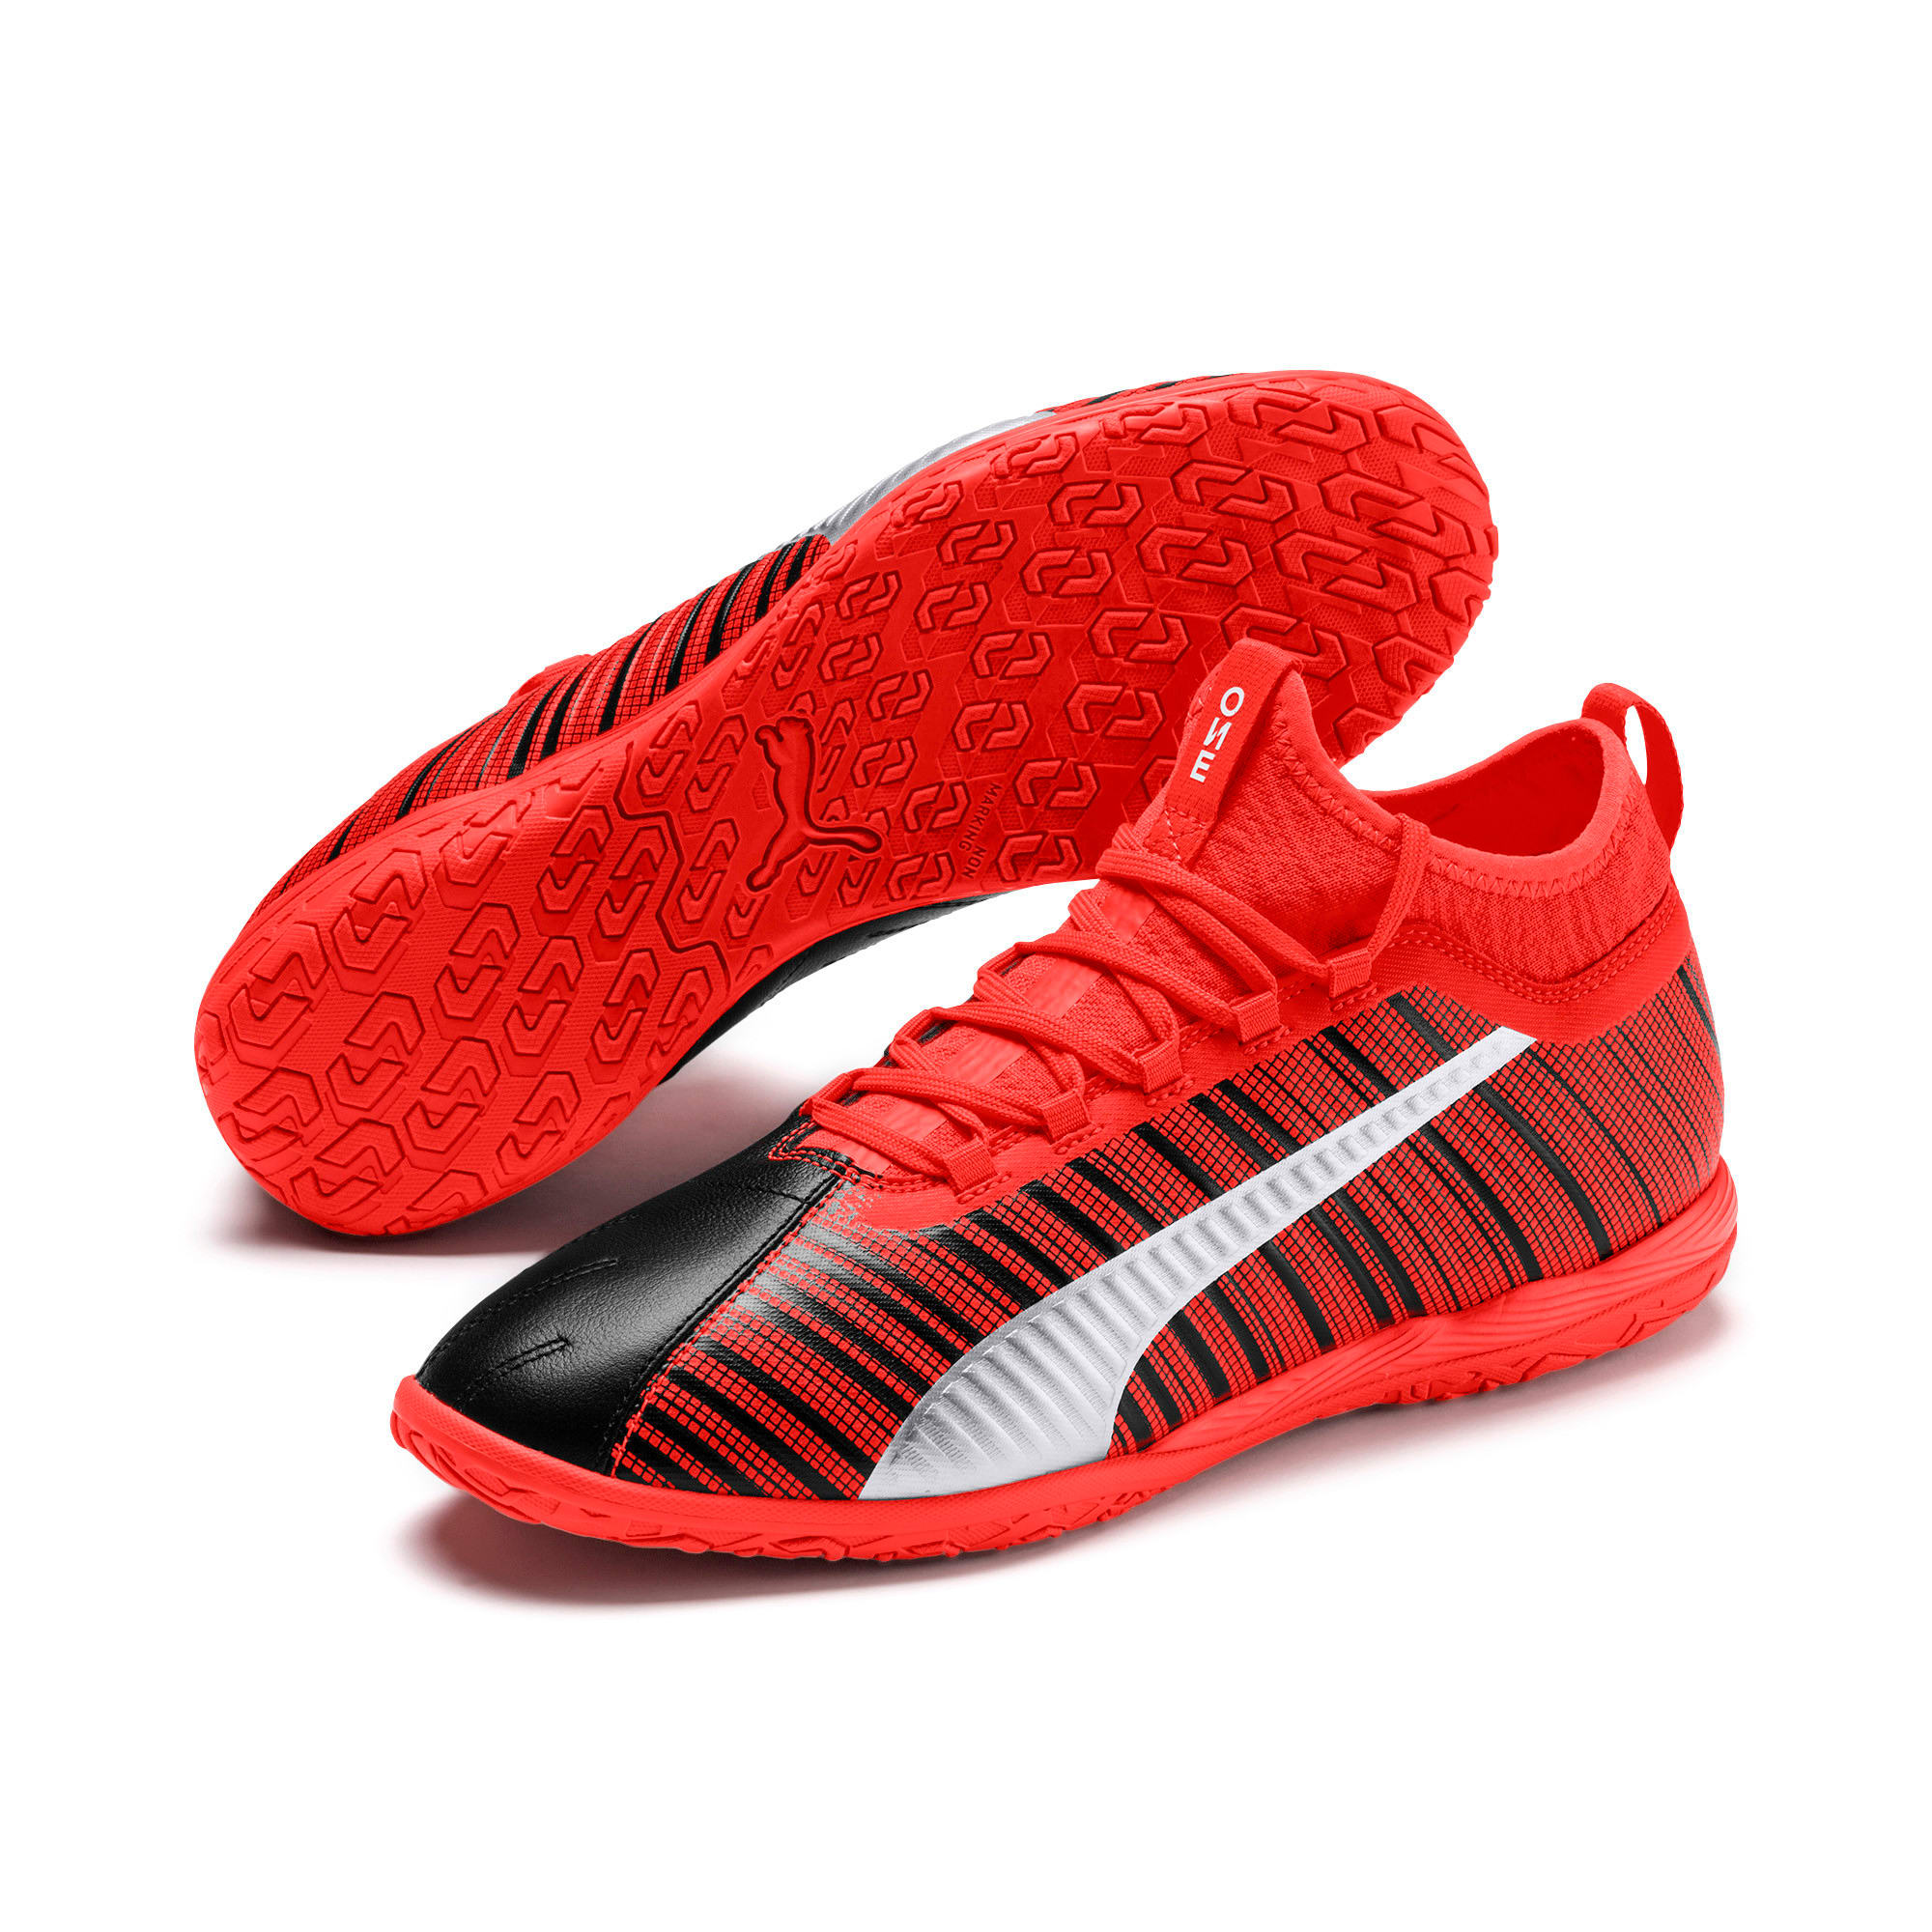 Thumbnail 3 of Chaussure de foot PUMA ONE 5.3 IT, Black-Nrgy Red-Aged Silver, medium